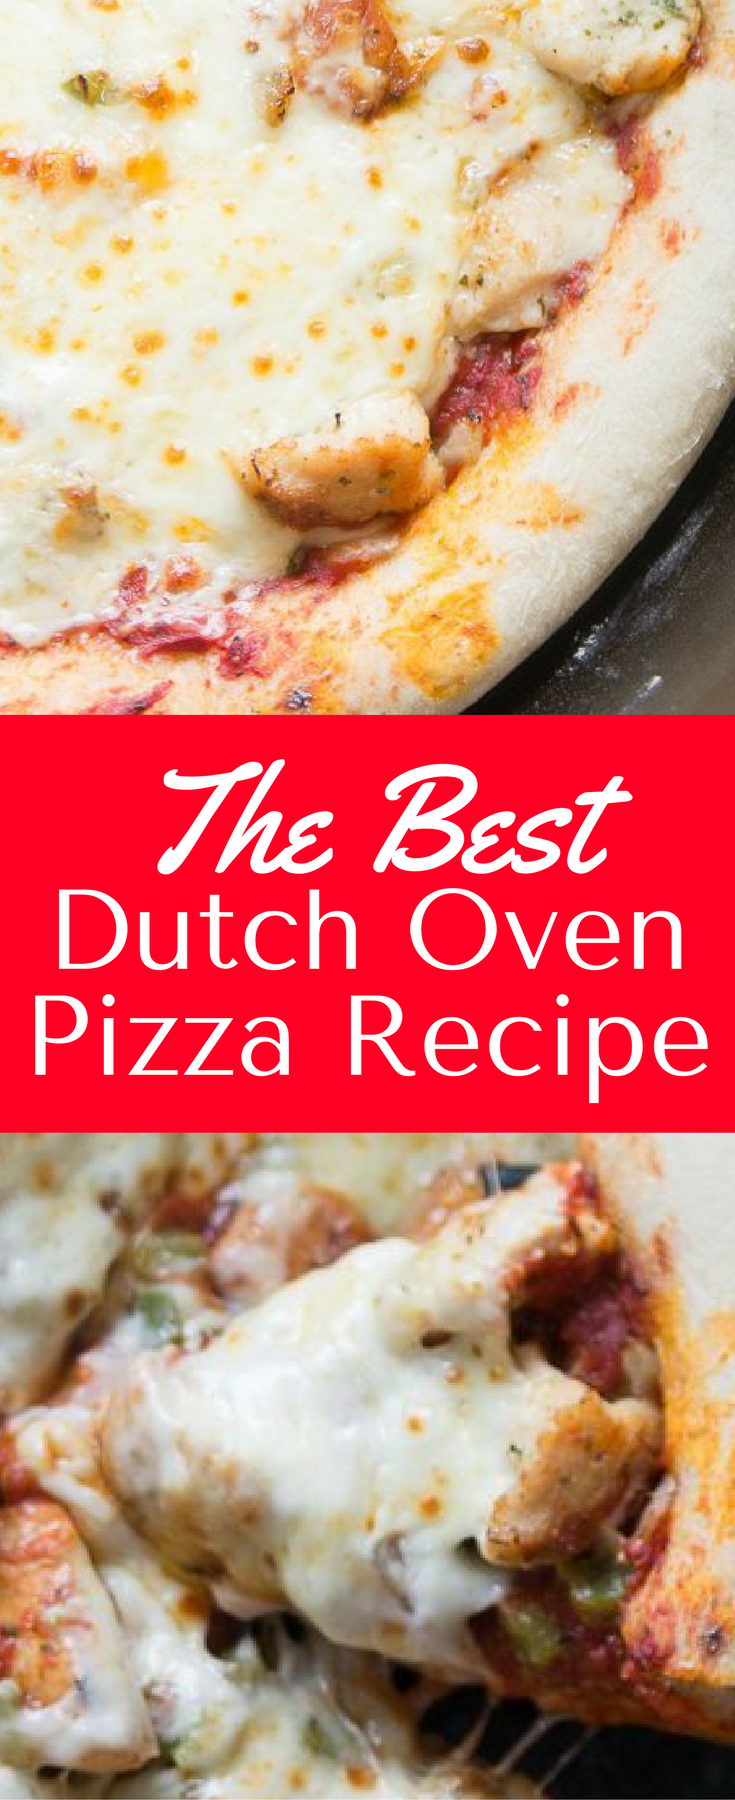 Dutch Oven Pizza / Dutch Oven Pizza Recipe / Outdoor Pizza / Camping Pizza / Pizza Recipe / Pizza Dough / Camping / Dutch Oven Cooking via @clarkscondensed